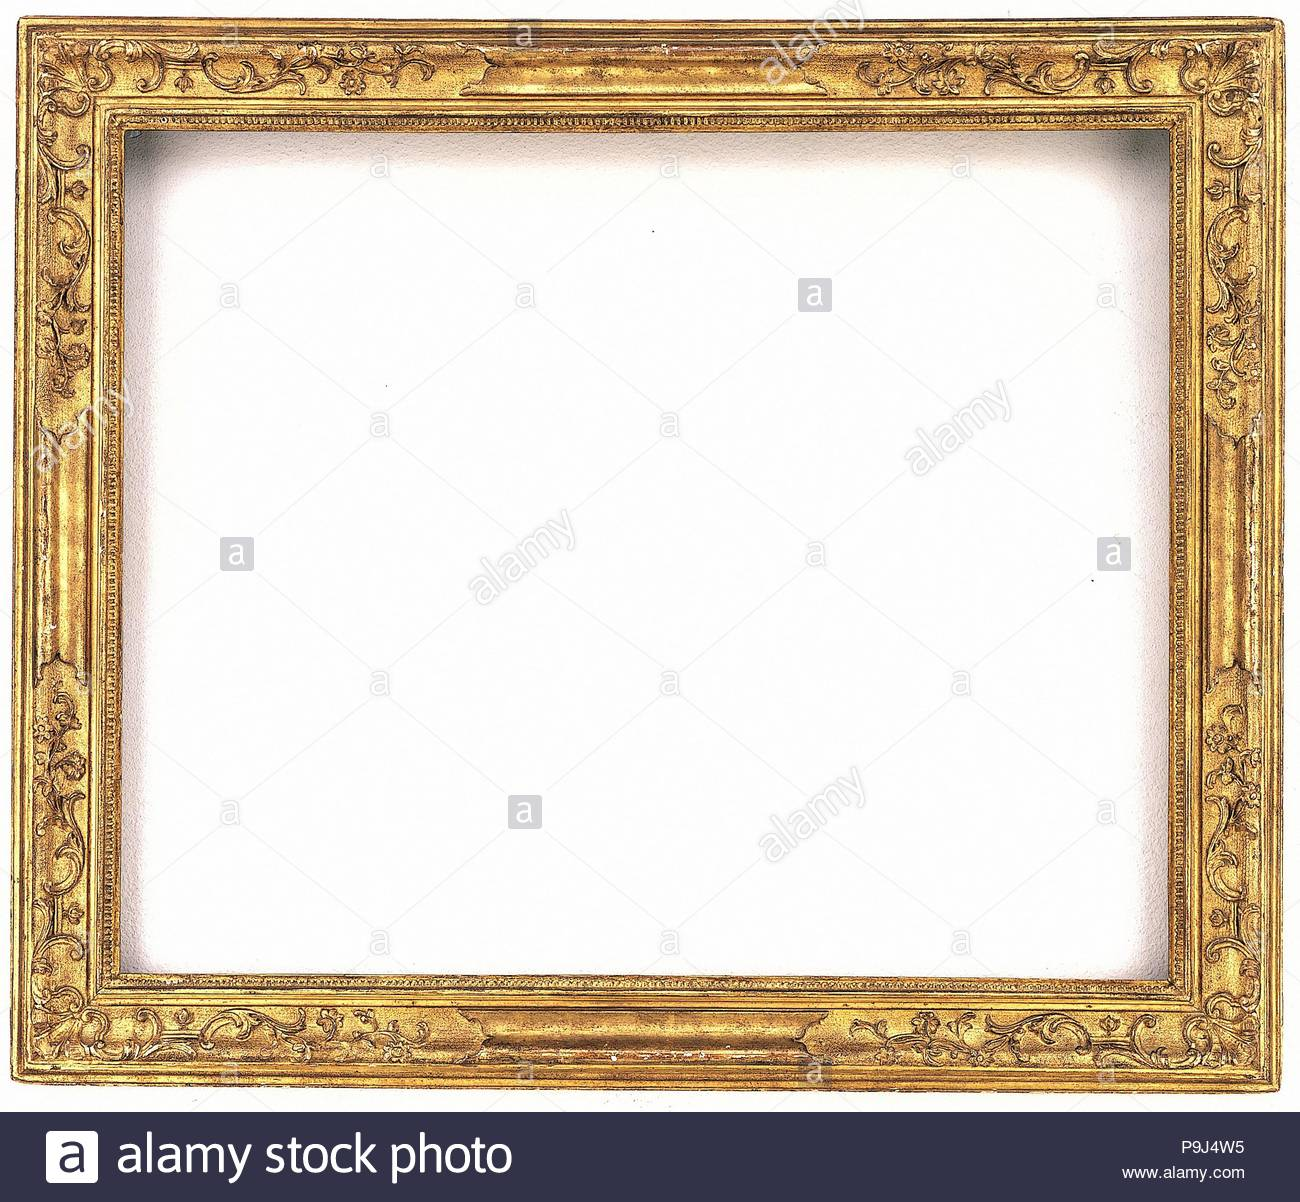 Canaletto Frame Stock Photos Canaletto Frame Stock Images Alamy